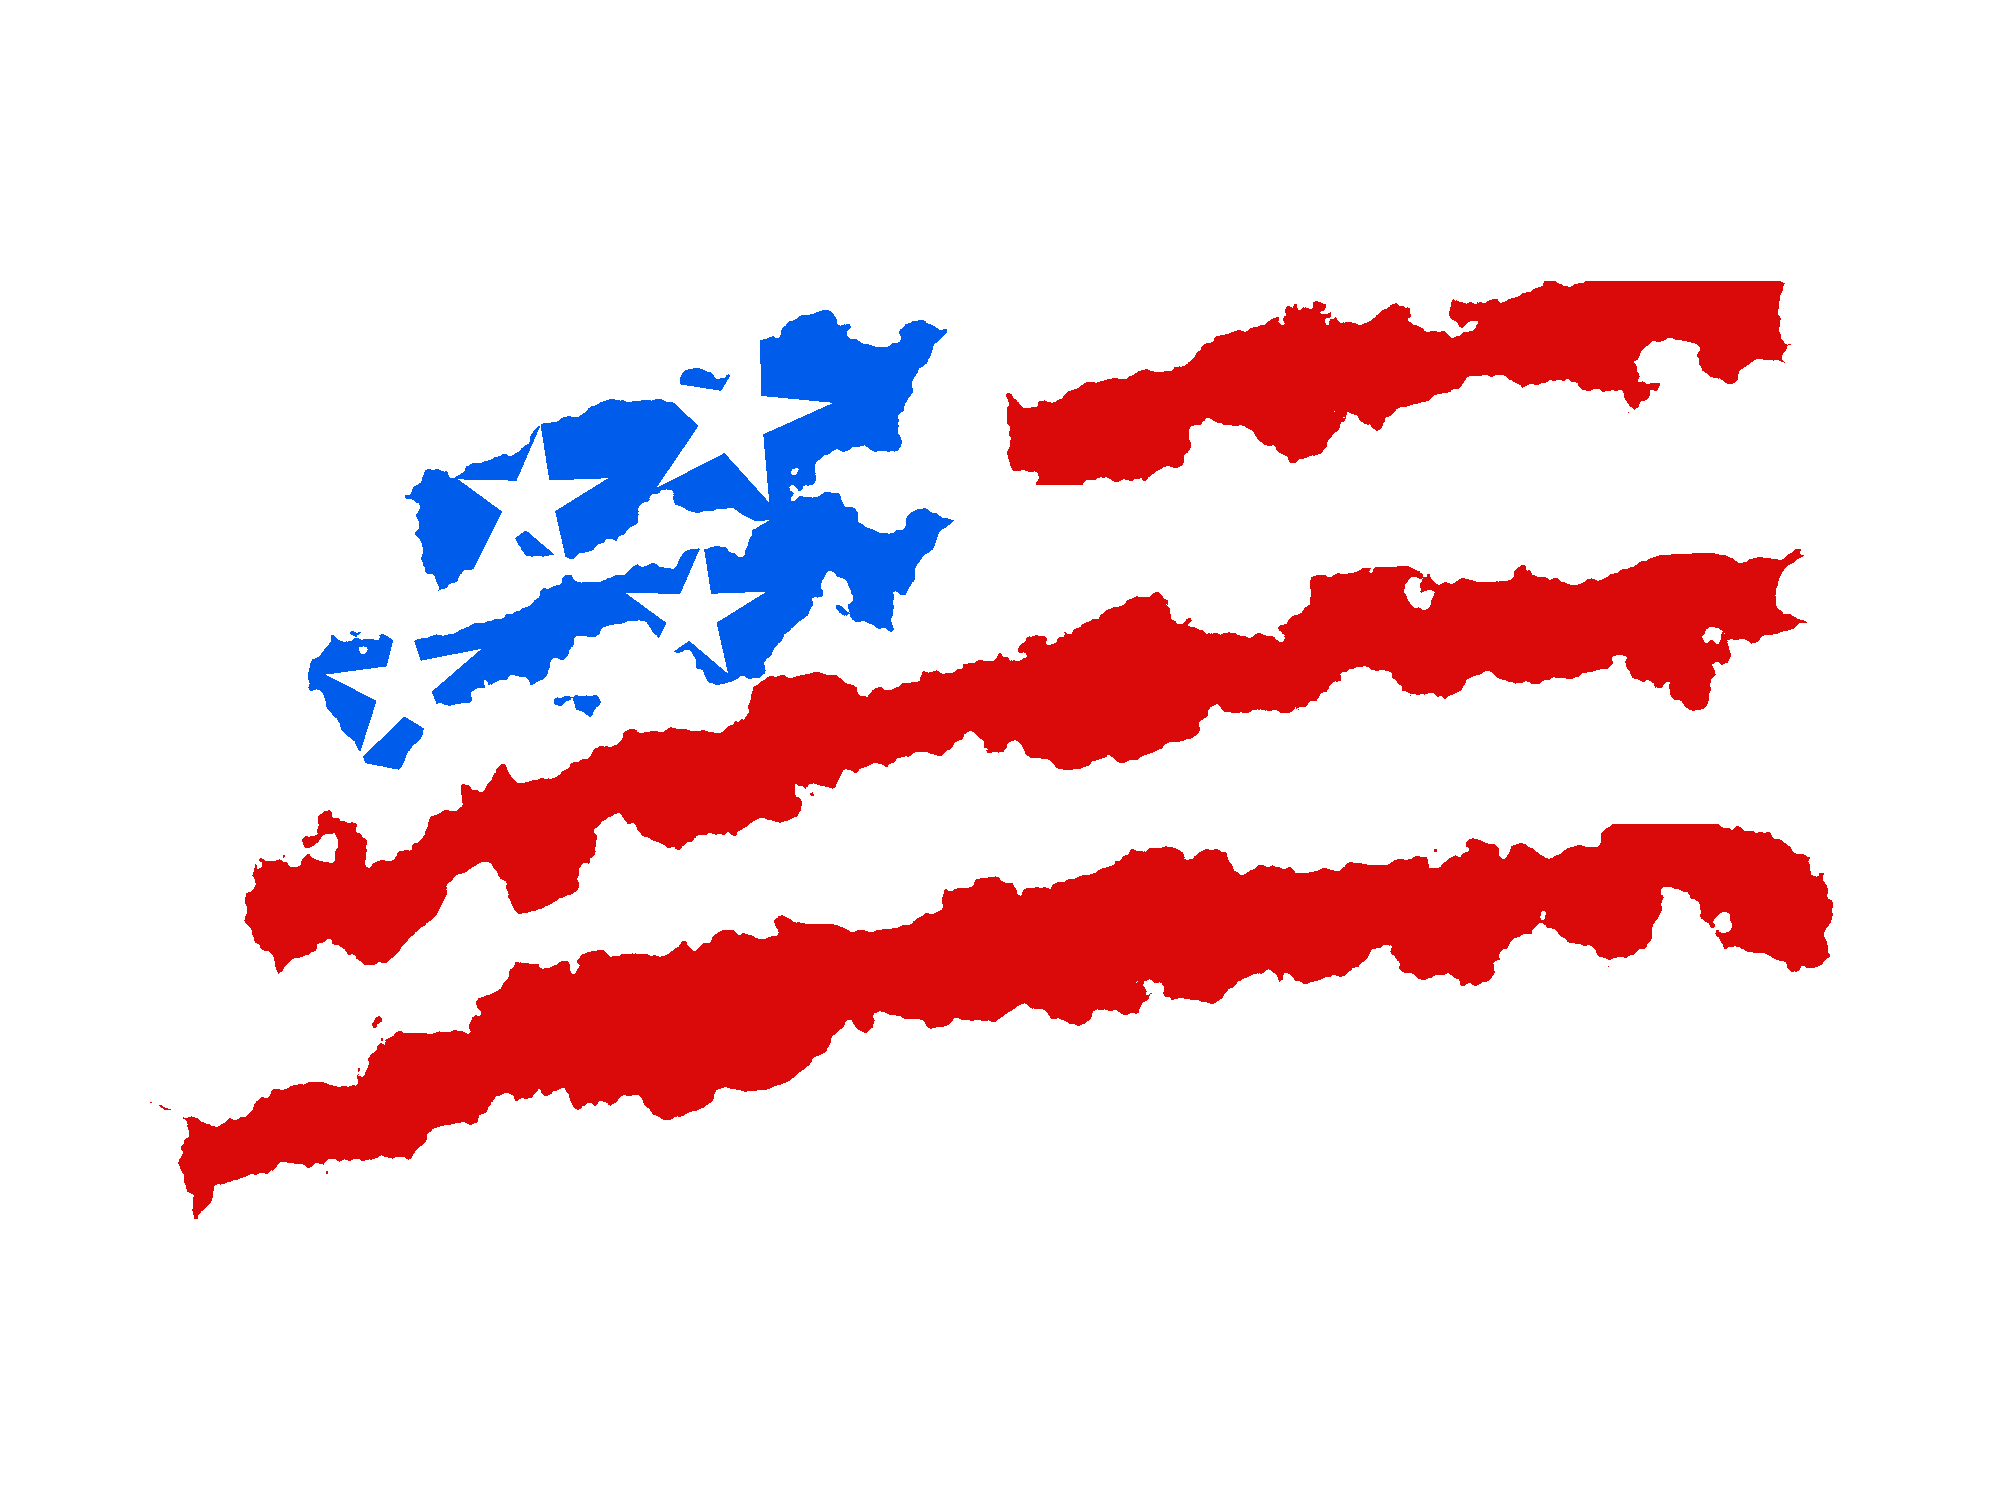 America Flag Png PNG Image - American Flag PNG Transparent